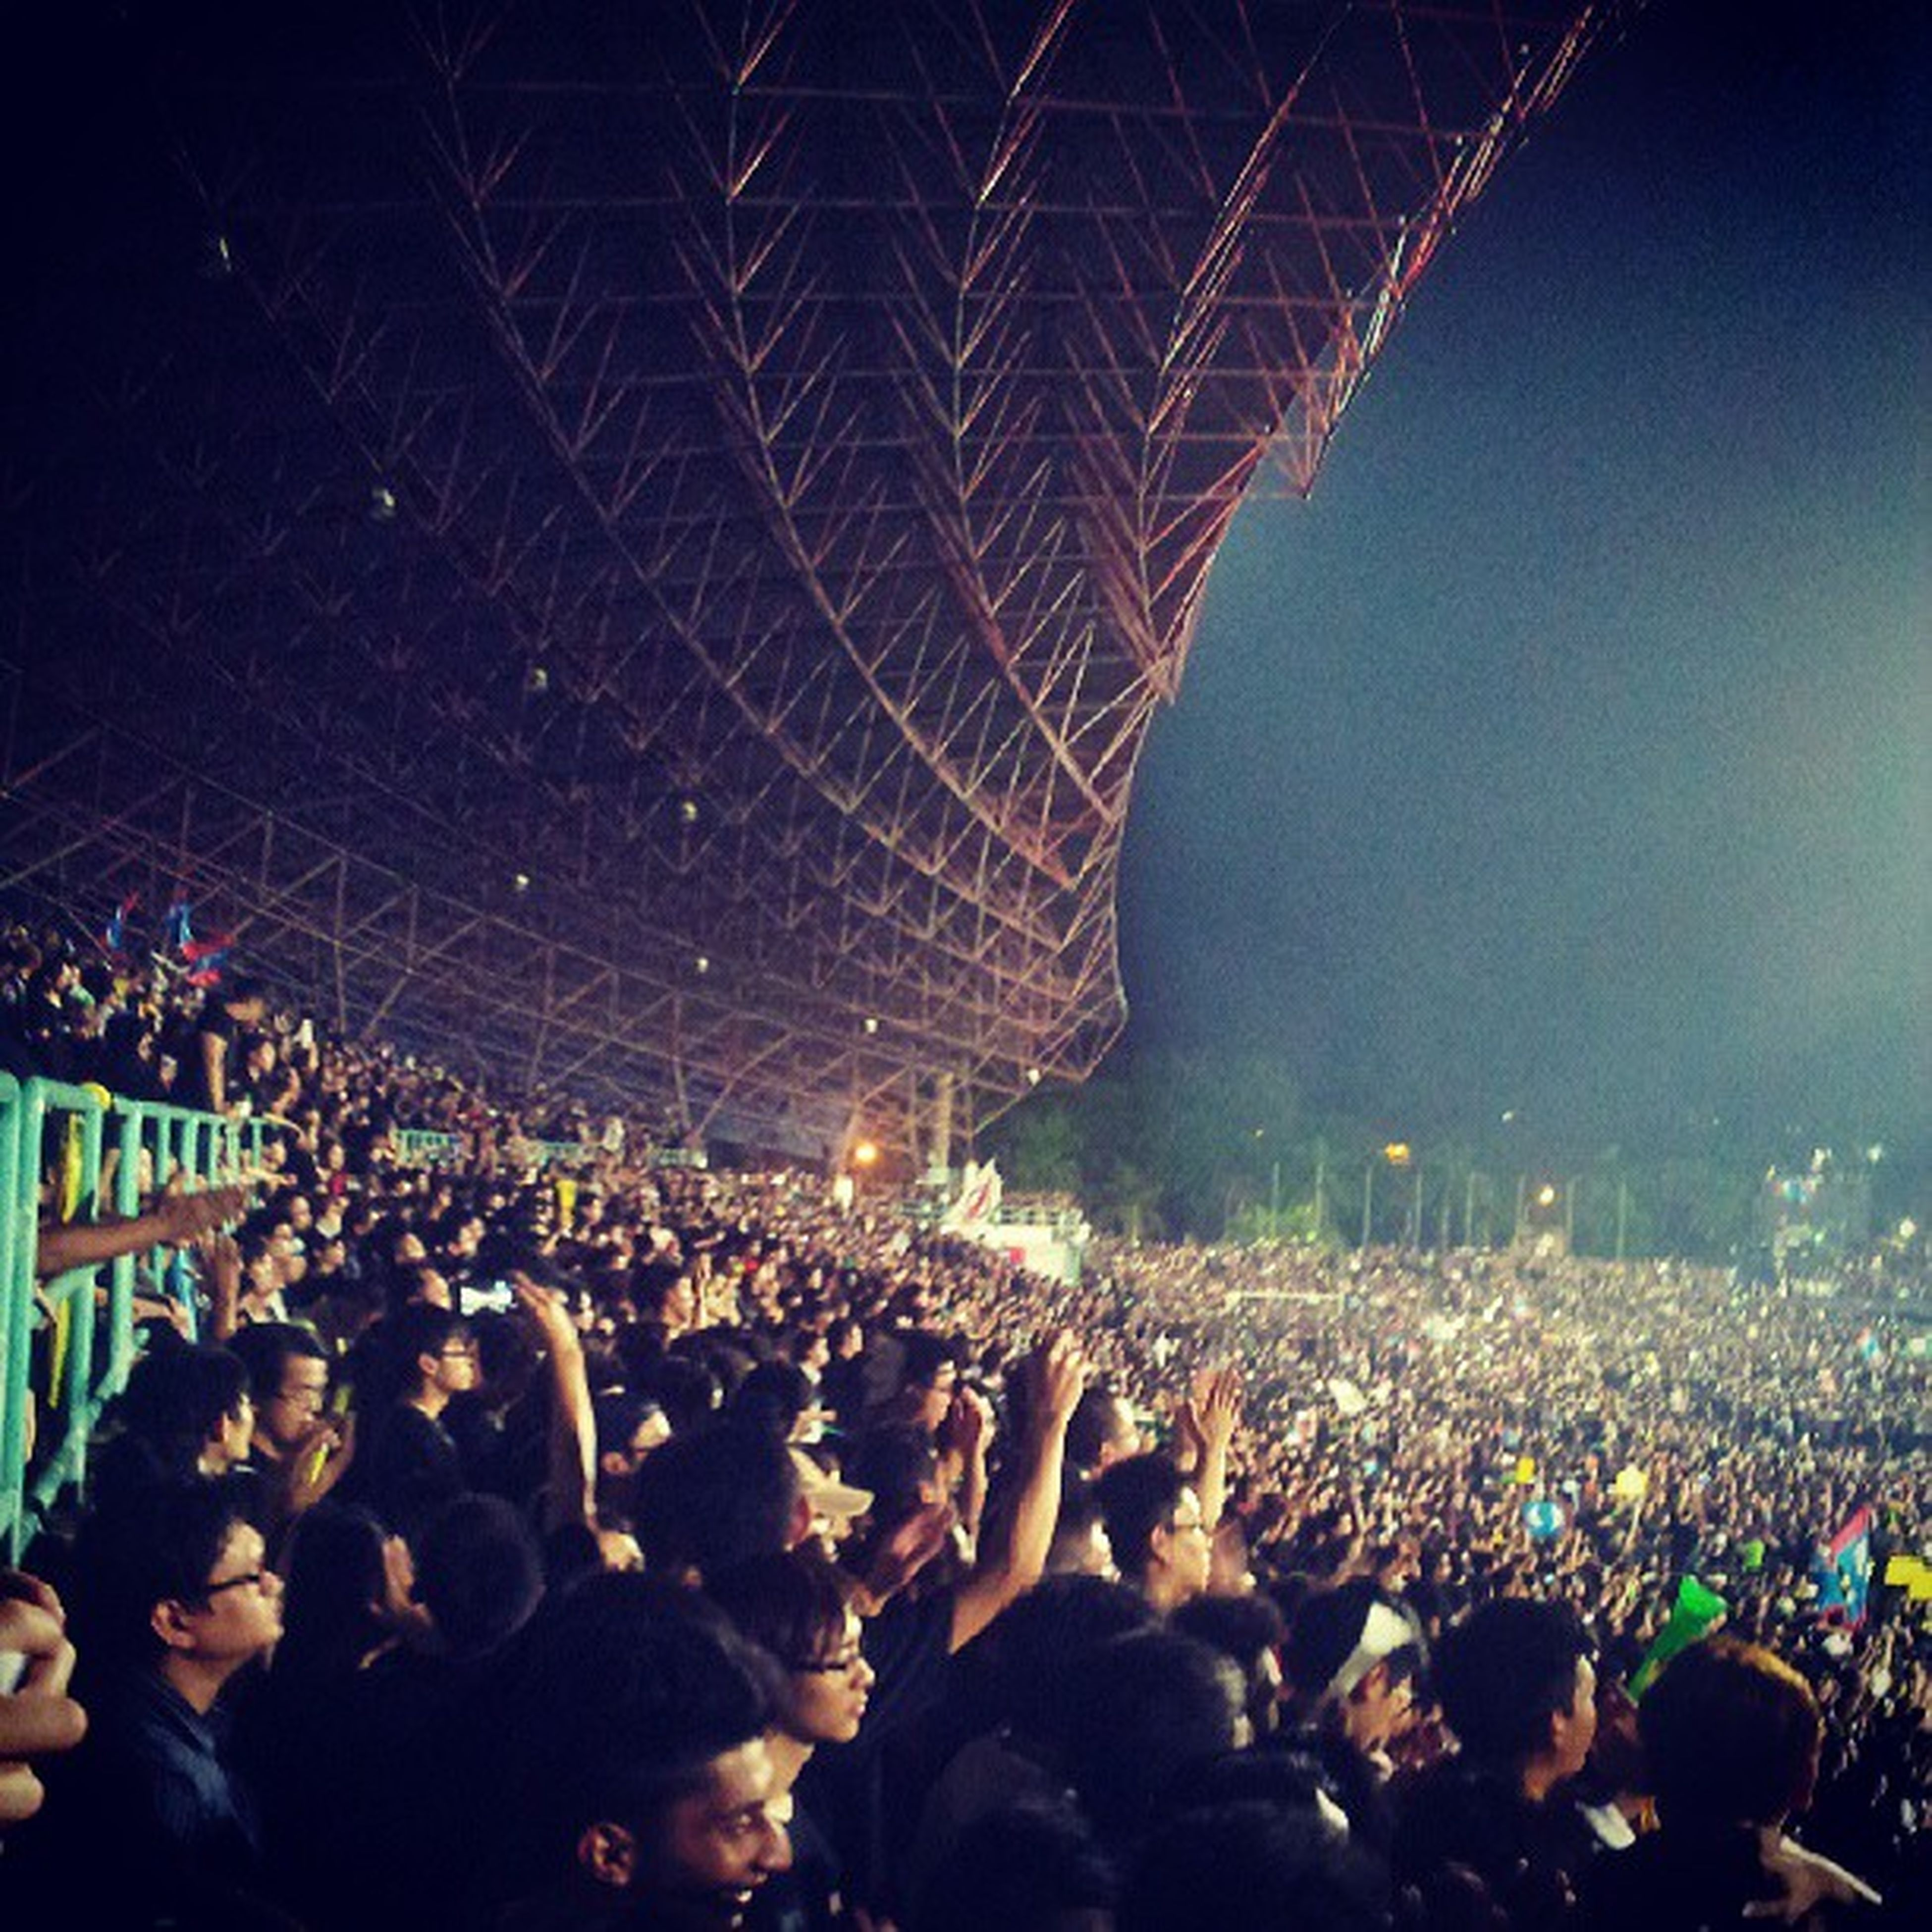 illuminated, large group of people, night, crowd, lifestyles, leisure activity, men, arts culture and entertainment, celebration, enjoyment, person, event, music festival, fun, music, togetherness, concert, stage - performance space